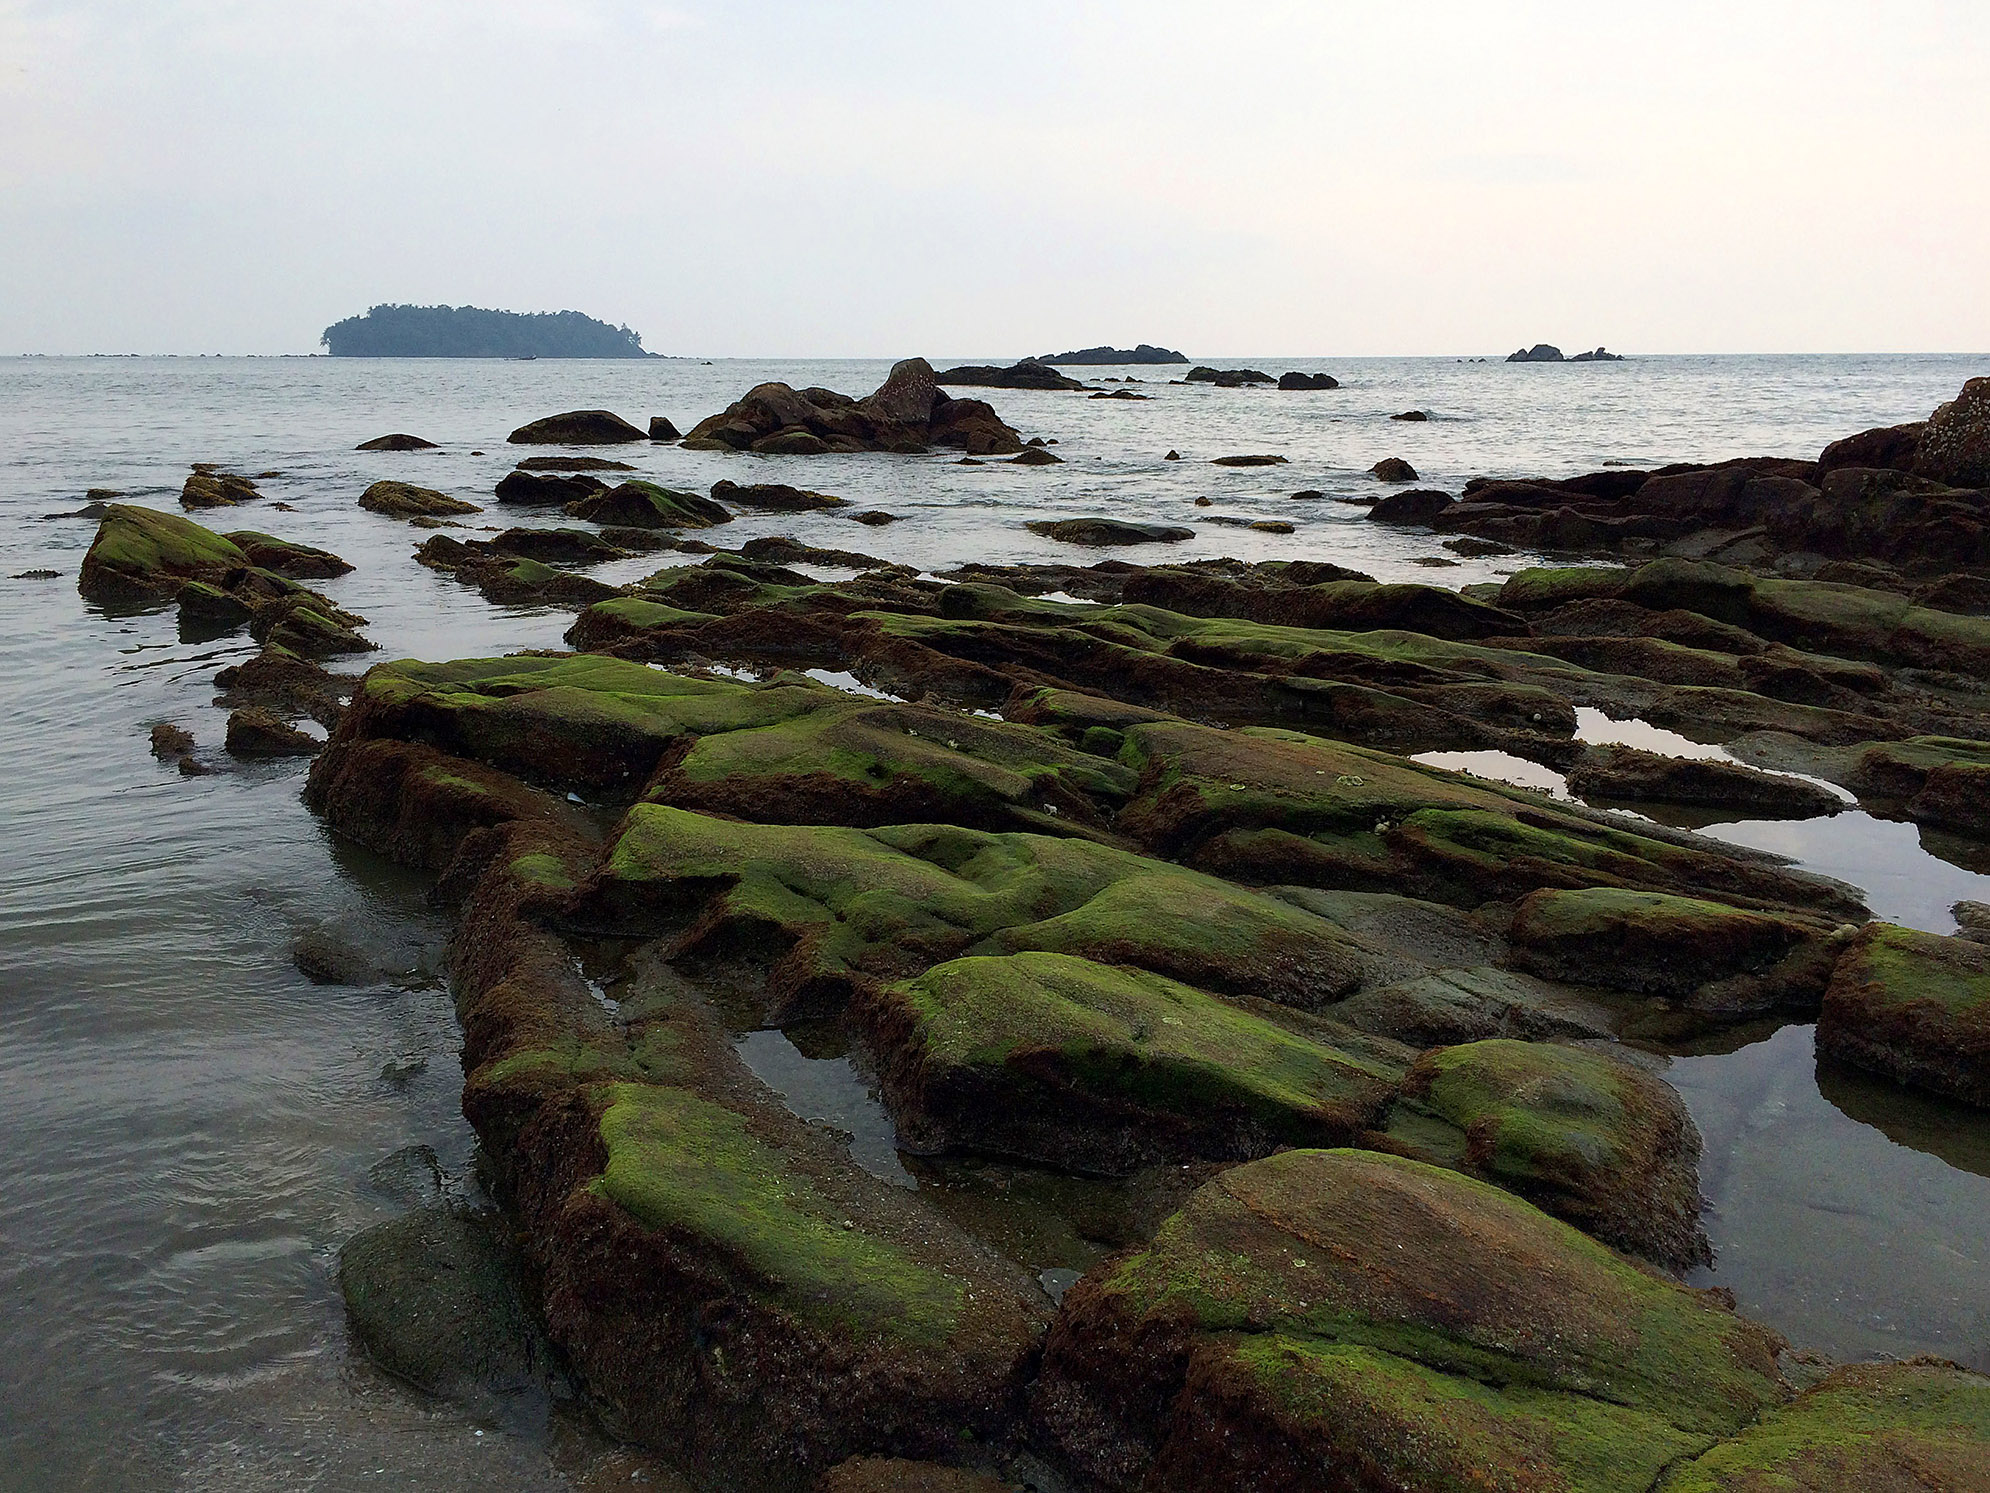 Rocks covered with Algae lead the eyes to the small island seen at the horizon -Kannur,kerela.